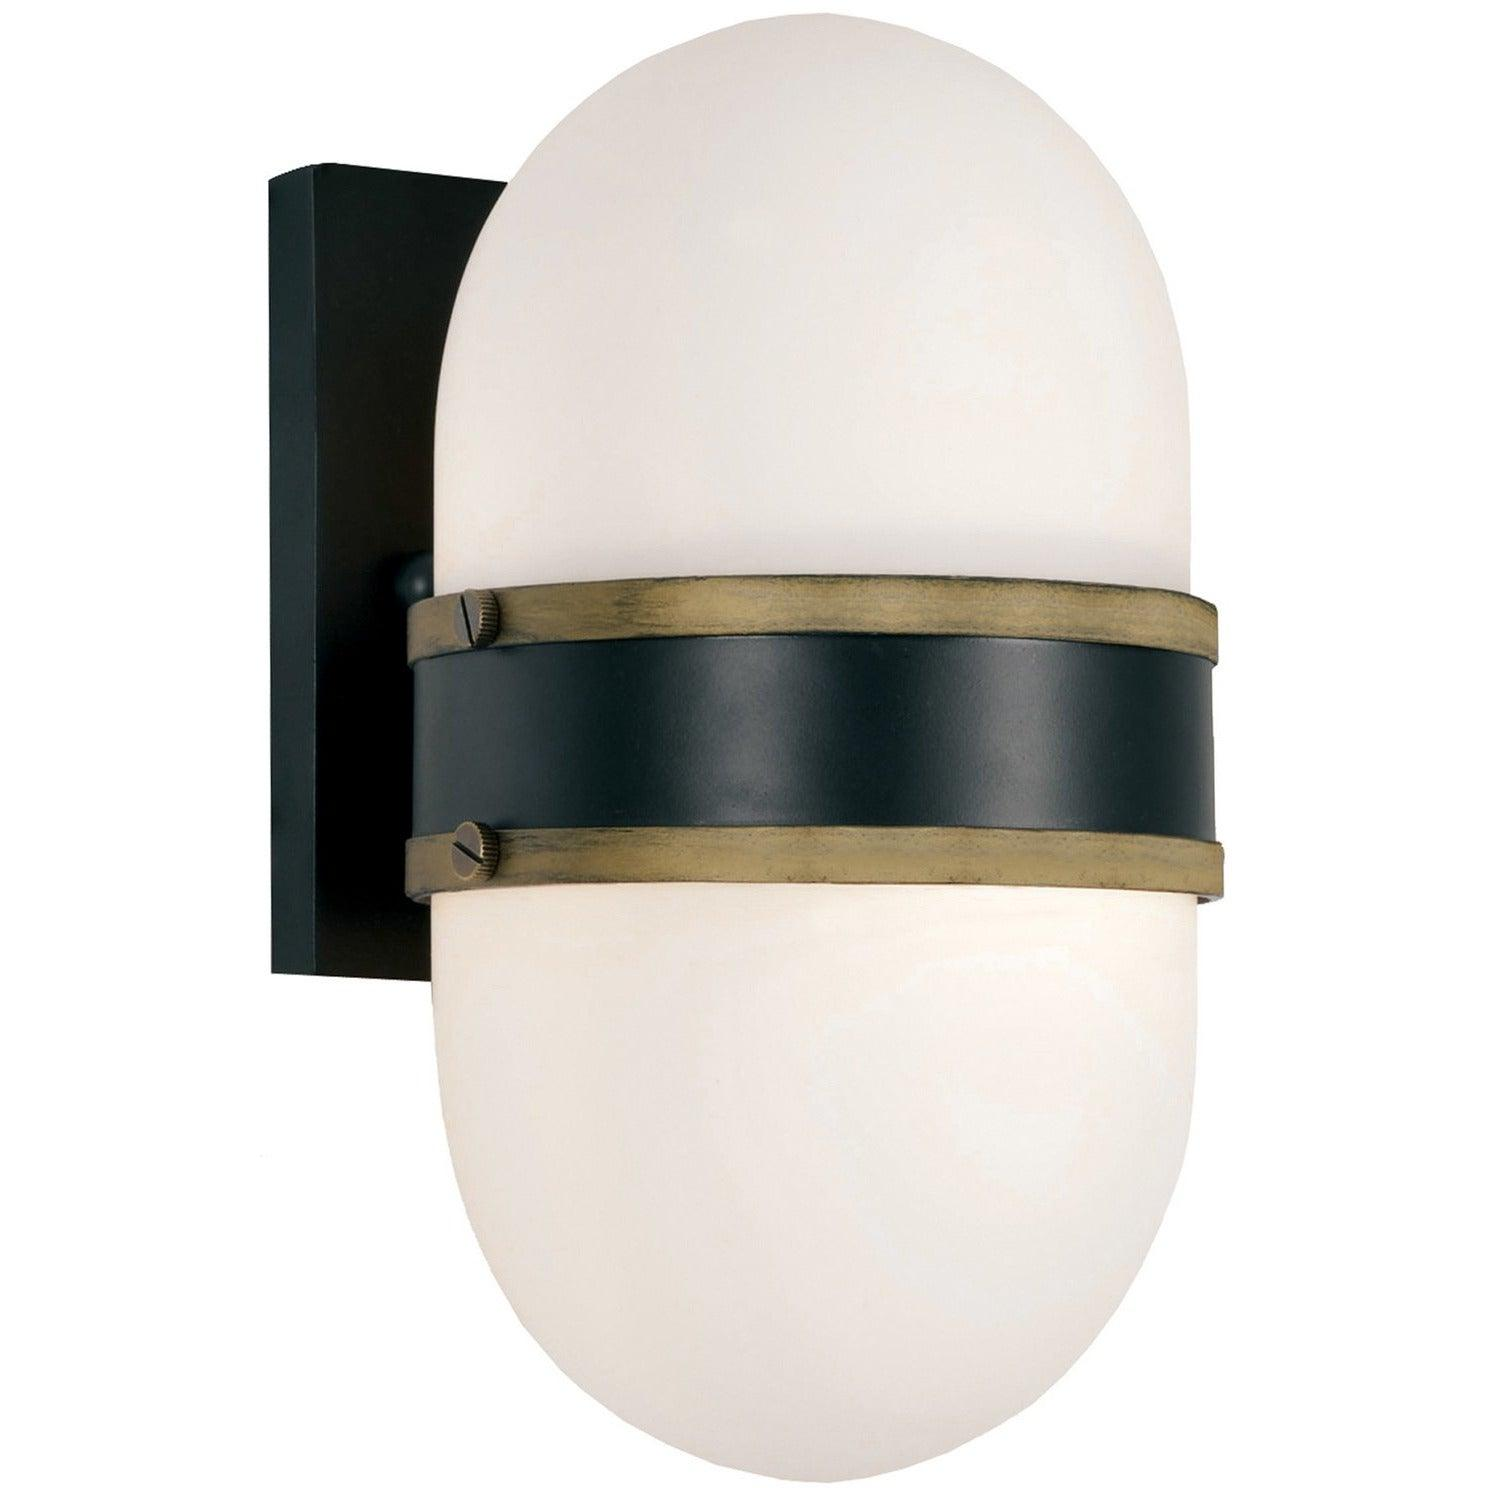 Crystorama - CAP-8501-MK-TG - One Light Outdoor Wall Mount - Capsule - Matte Black